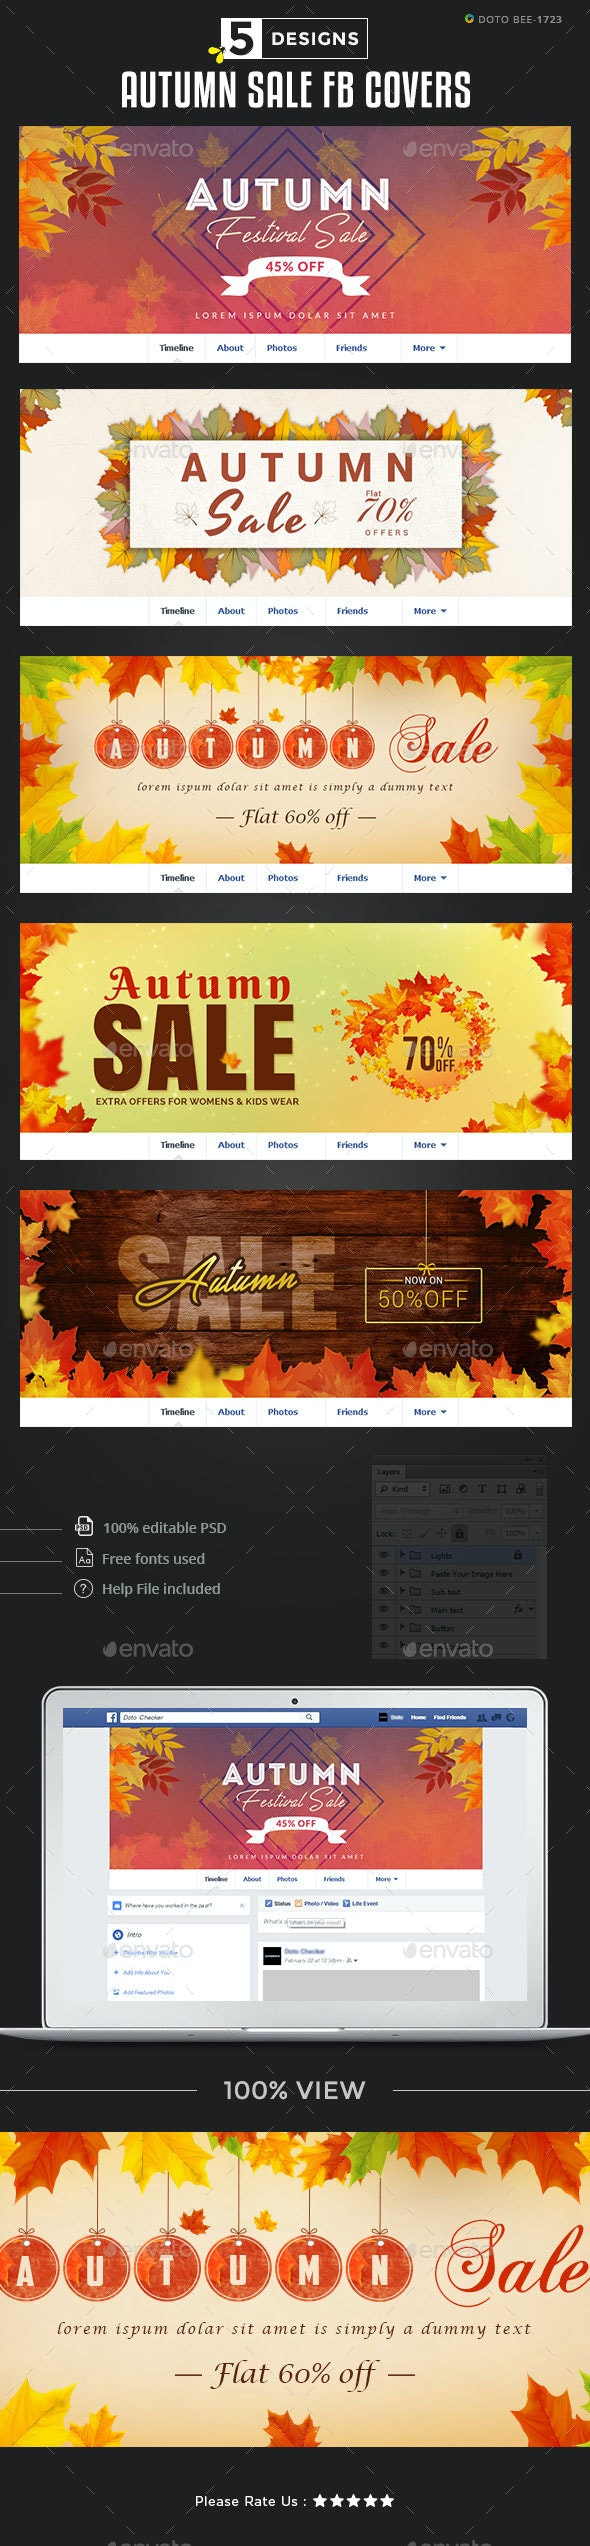 Autumn Sale Facebook Covers - 5 Designs by Hyov | GraphicRiver